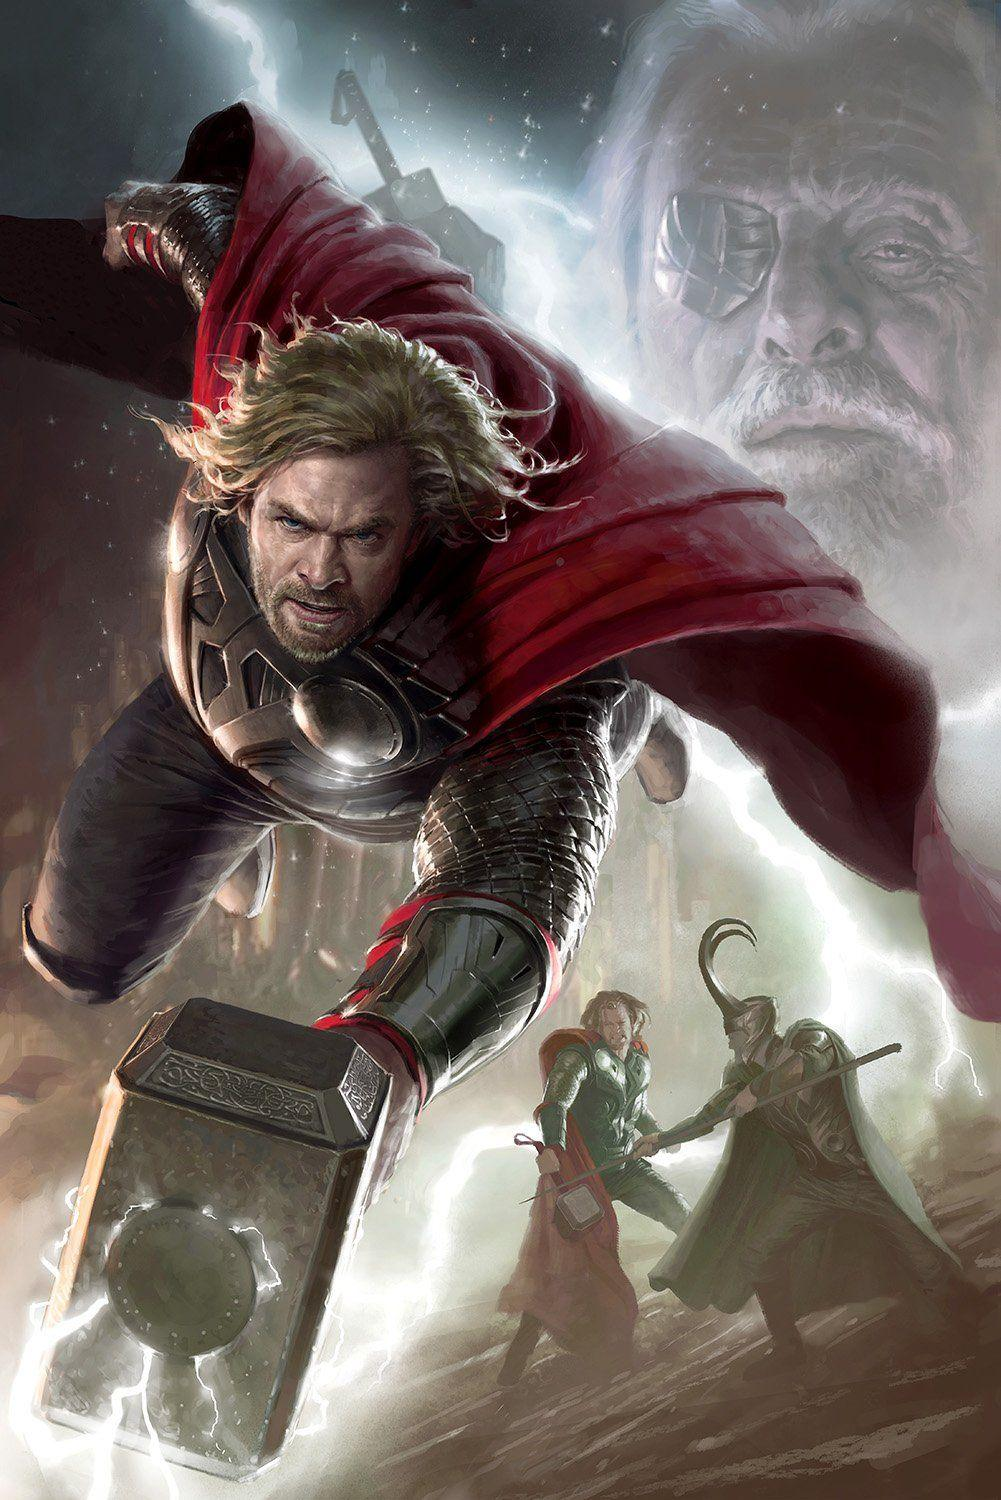 LEGENDS: THOR Giclée On Canvas MARVEL FINE ART